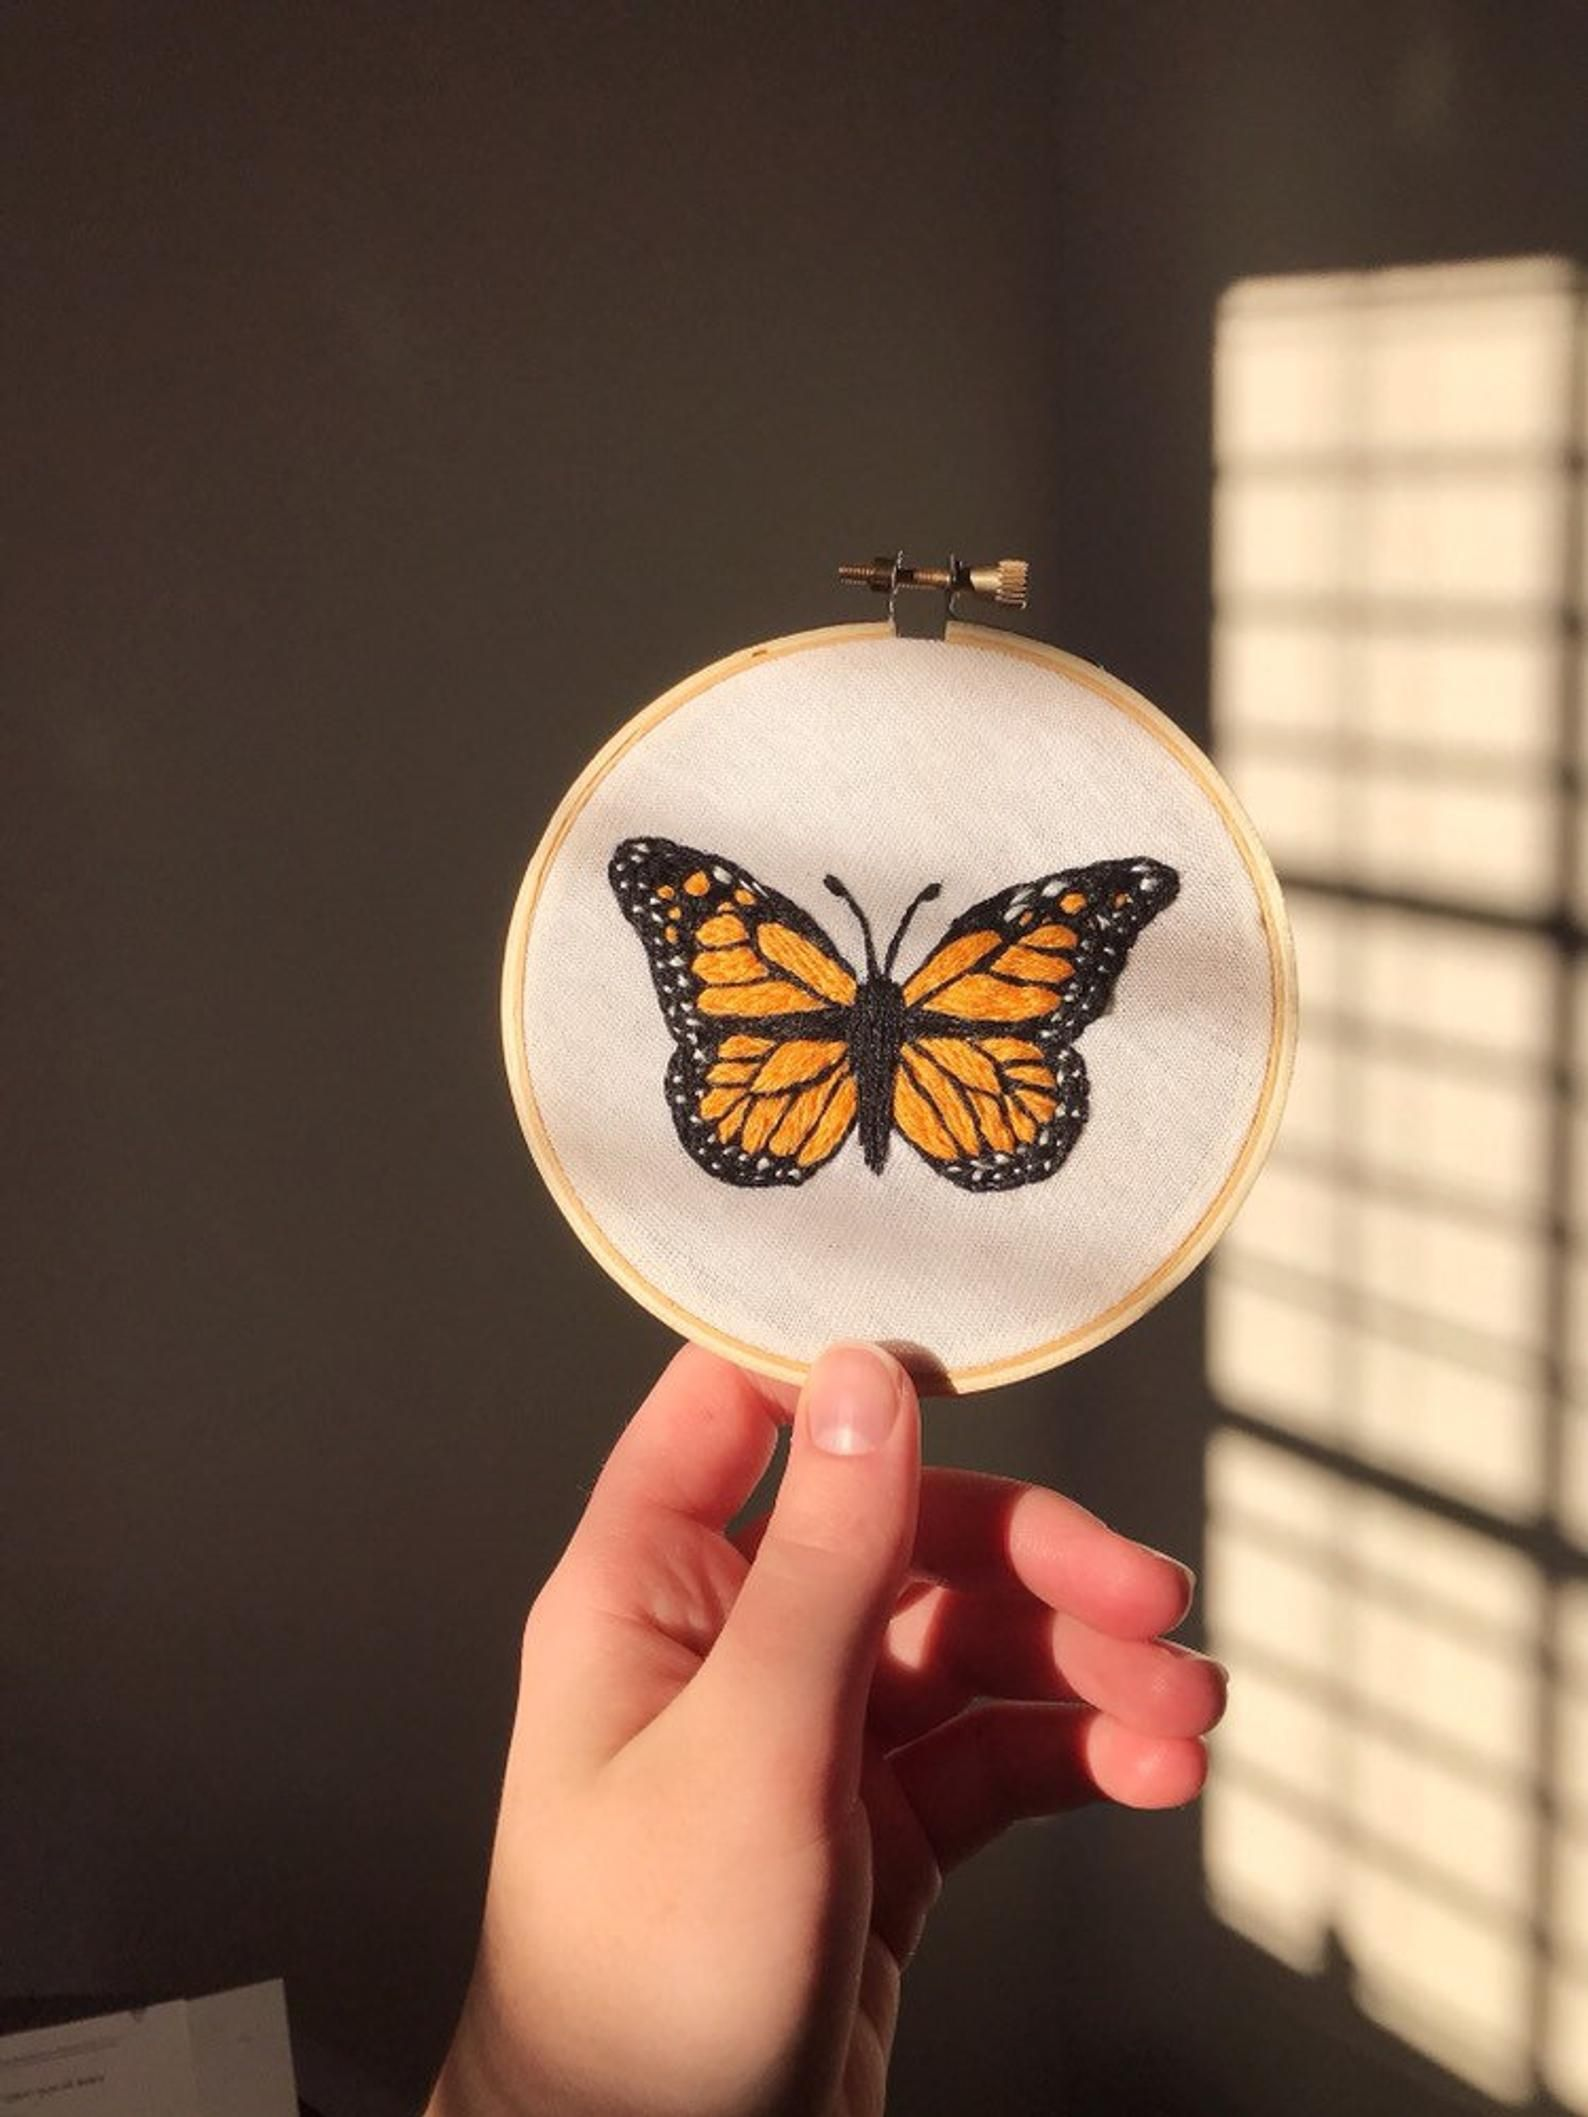 Monarch Butterfly Embroidery Hoop / Needle Painting